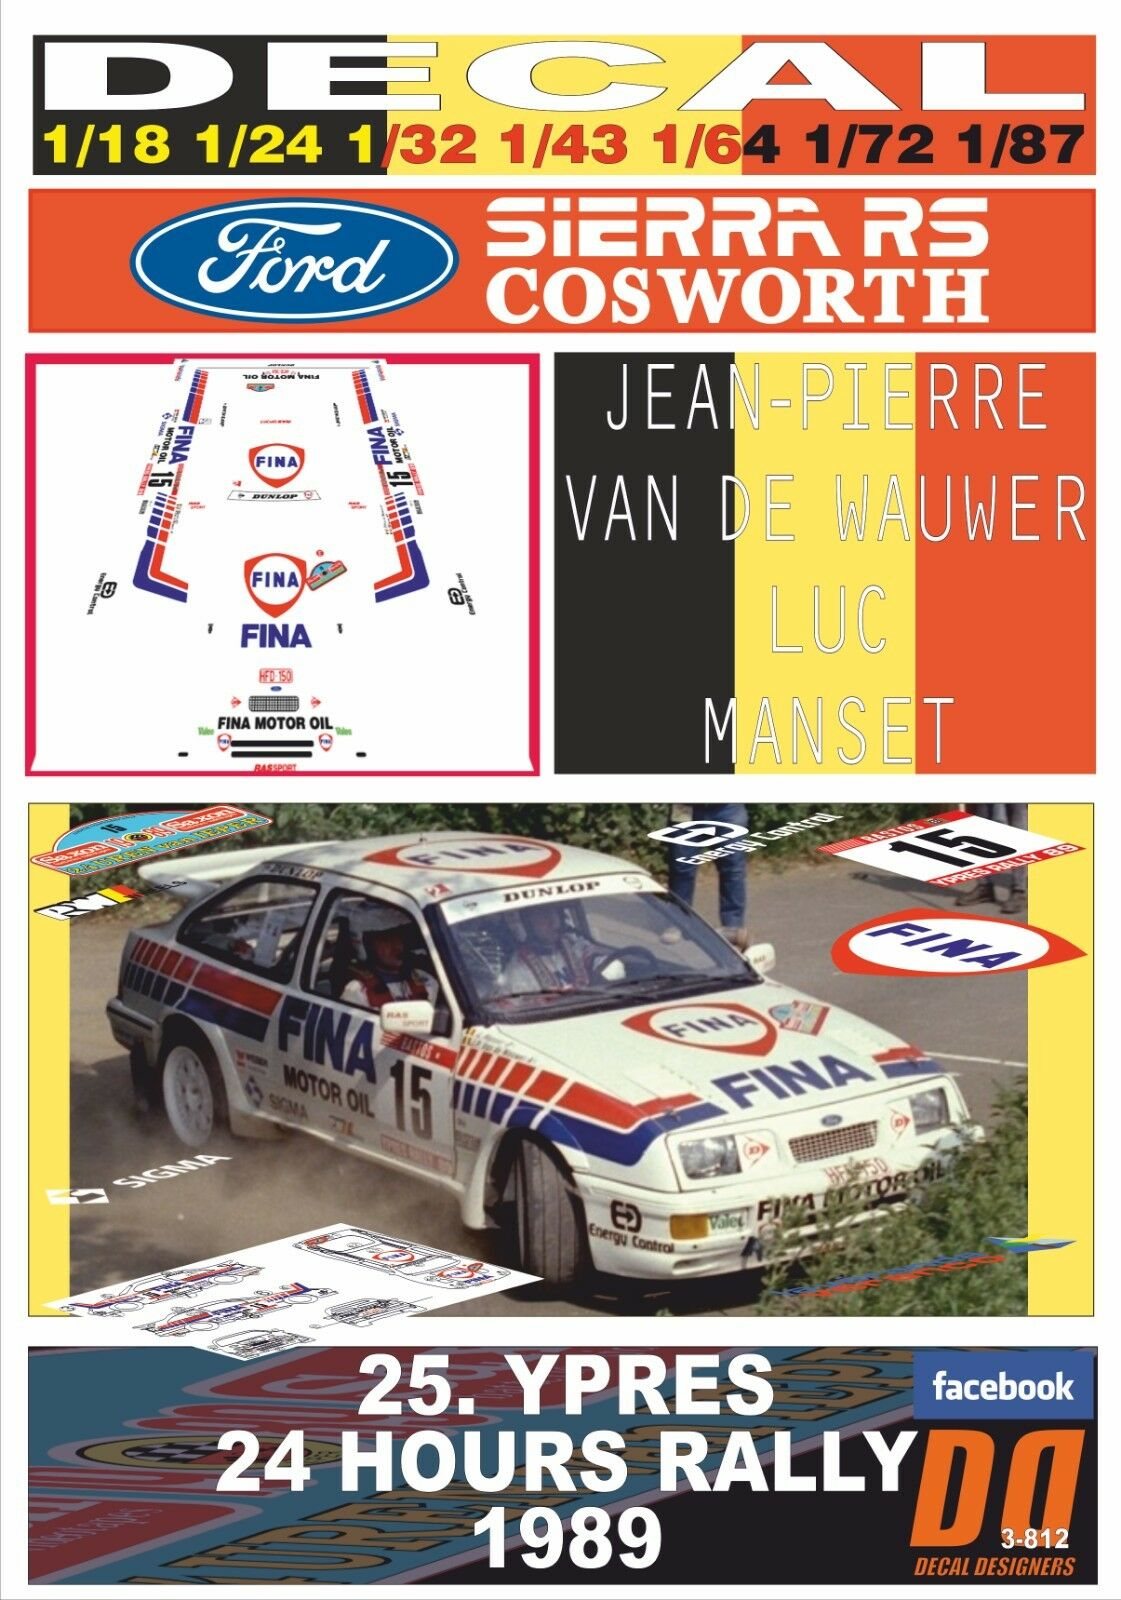 Decal Ford Sierra RS Cosworth J-p. van de wauwer Ypres Ypres Ypres 24 hours R. 1989 3rd (05) 093382